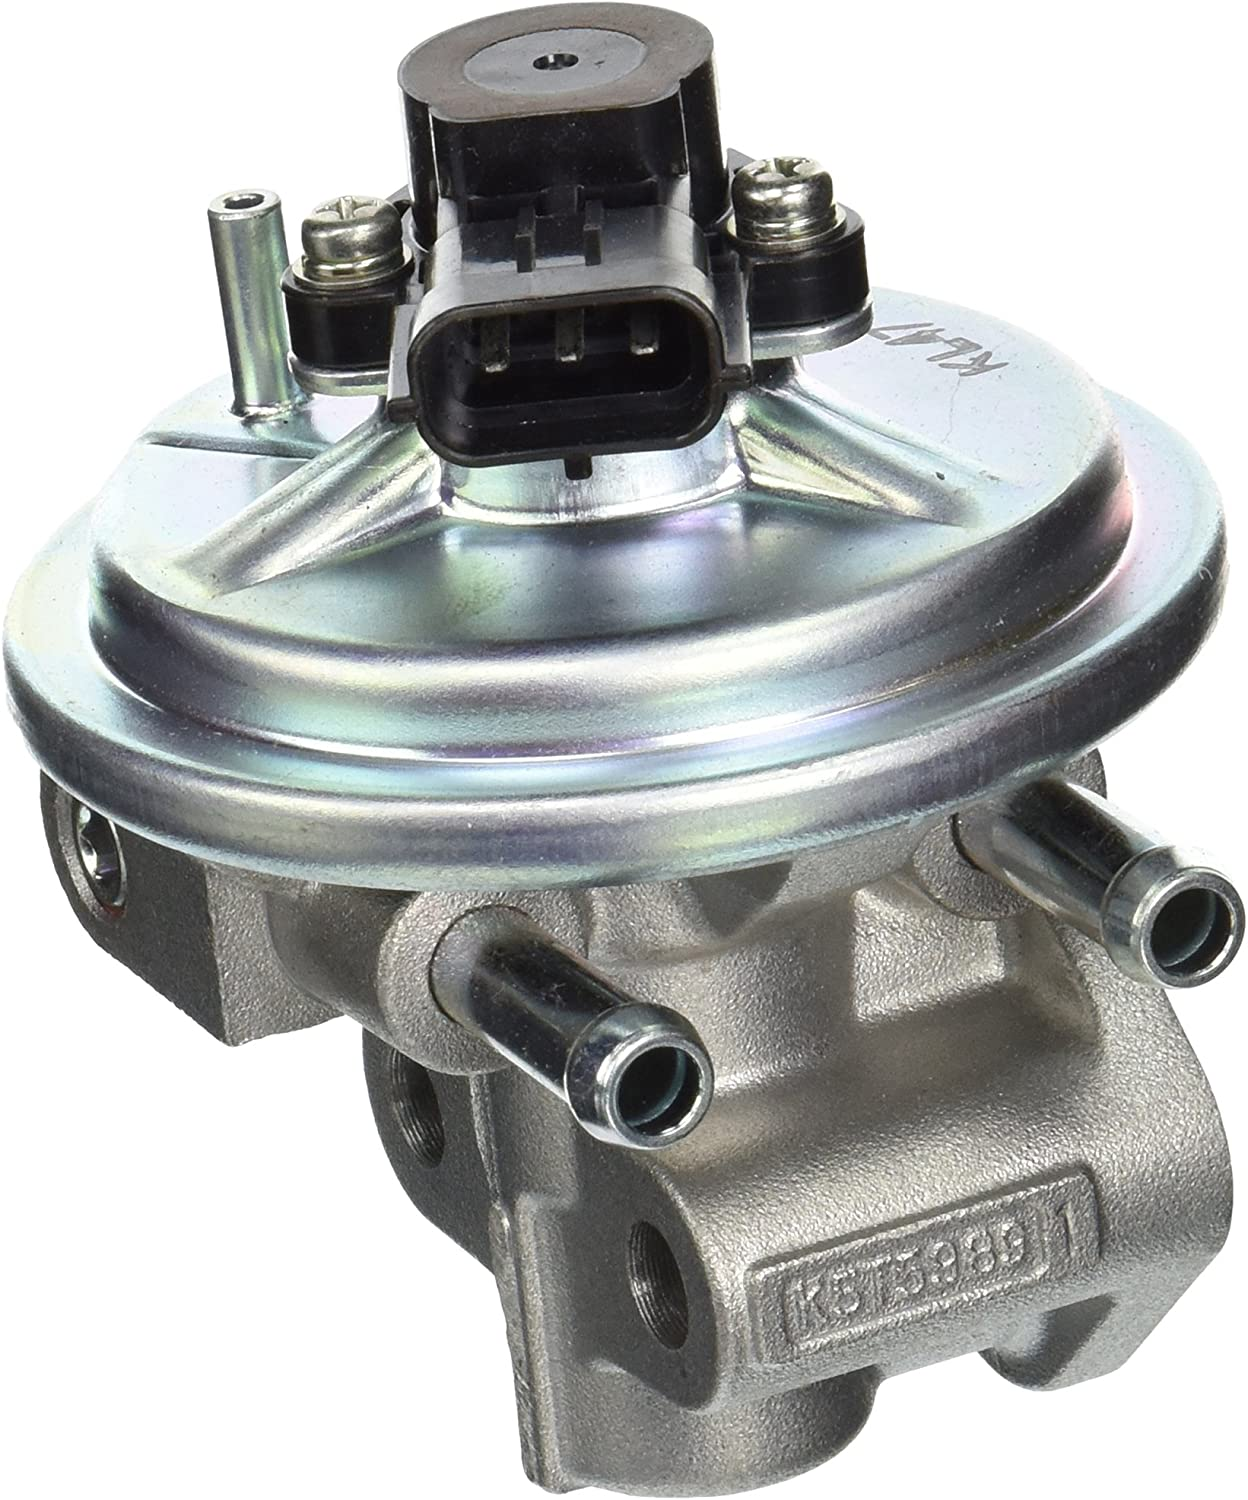 Standard New Free Shipping Ranking integrated 1st place Motor Products Valve EGV996 EGR